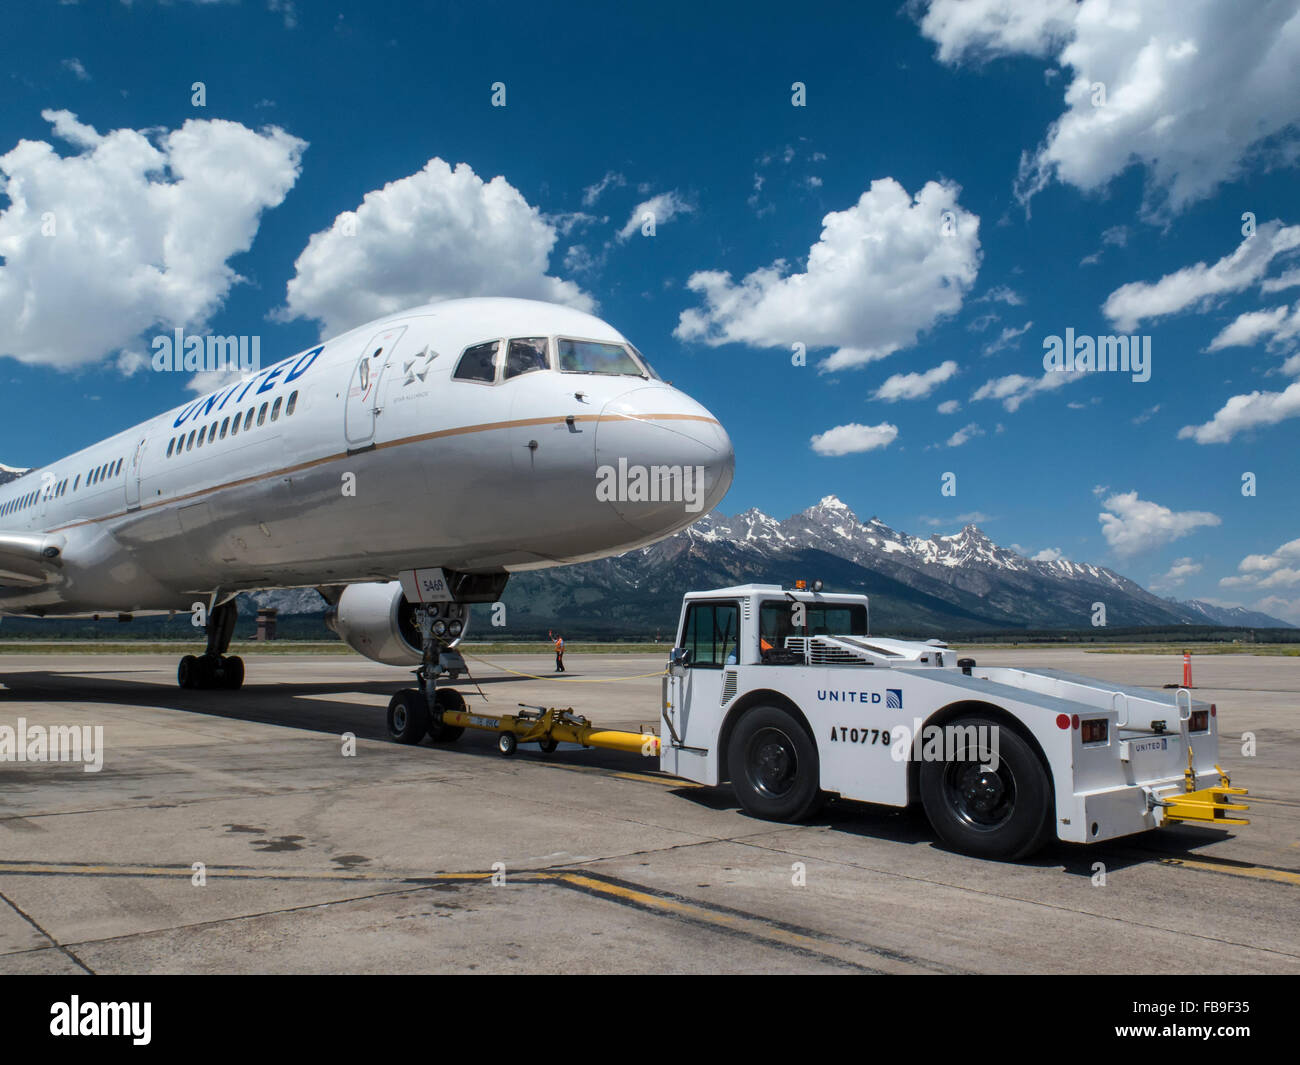 A United Airlines Boeing 757 in Jackson Hole Airport, Wyoming being pushed to the taxiway - Stock Image